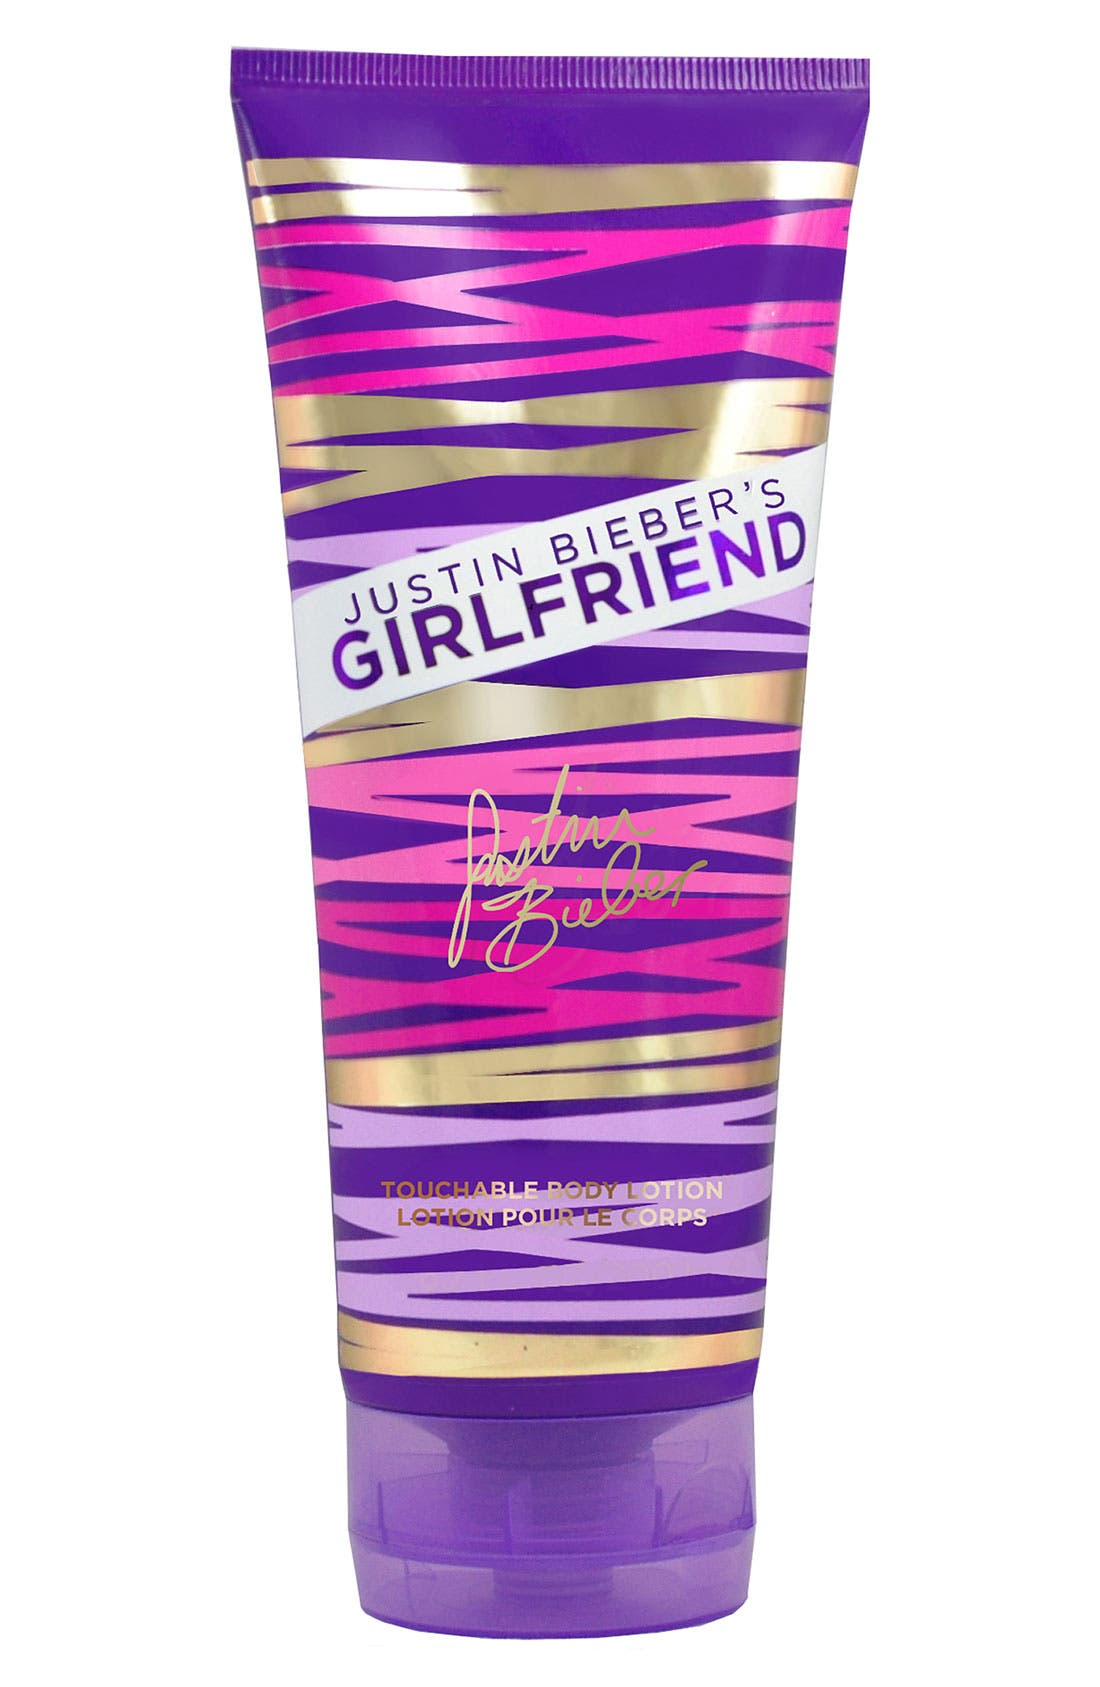 JUSTIN BIEBER GIRLFRIEND by JUSTIN BIEBER Body Lotion, Main, color, 000